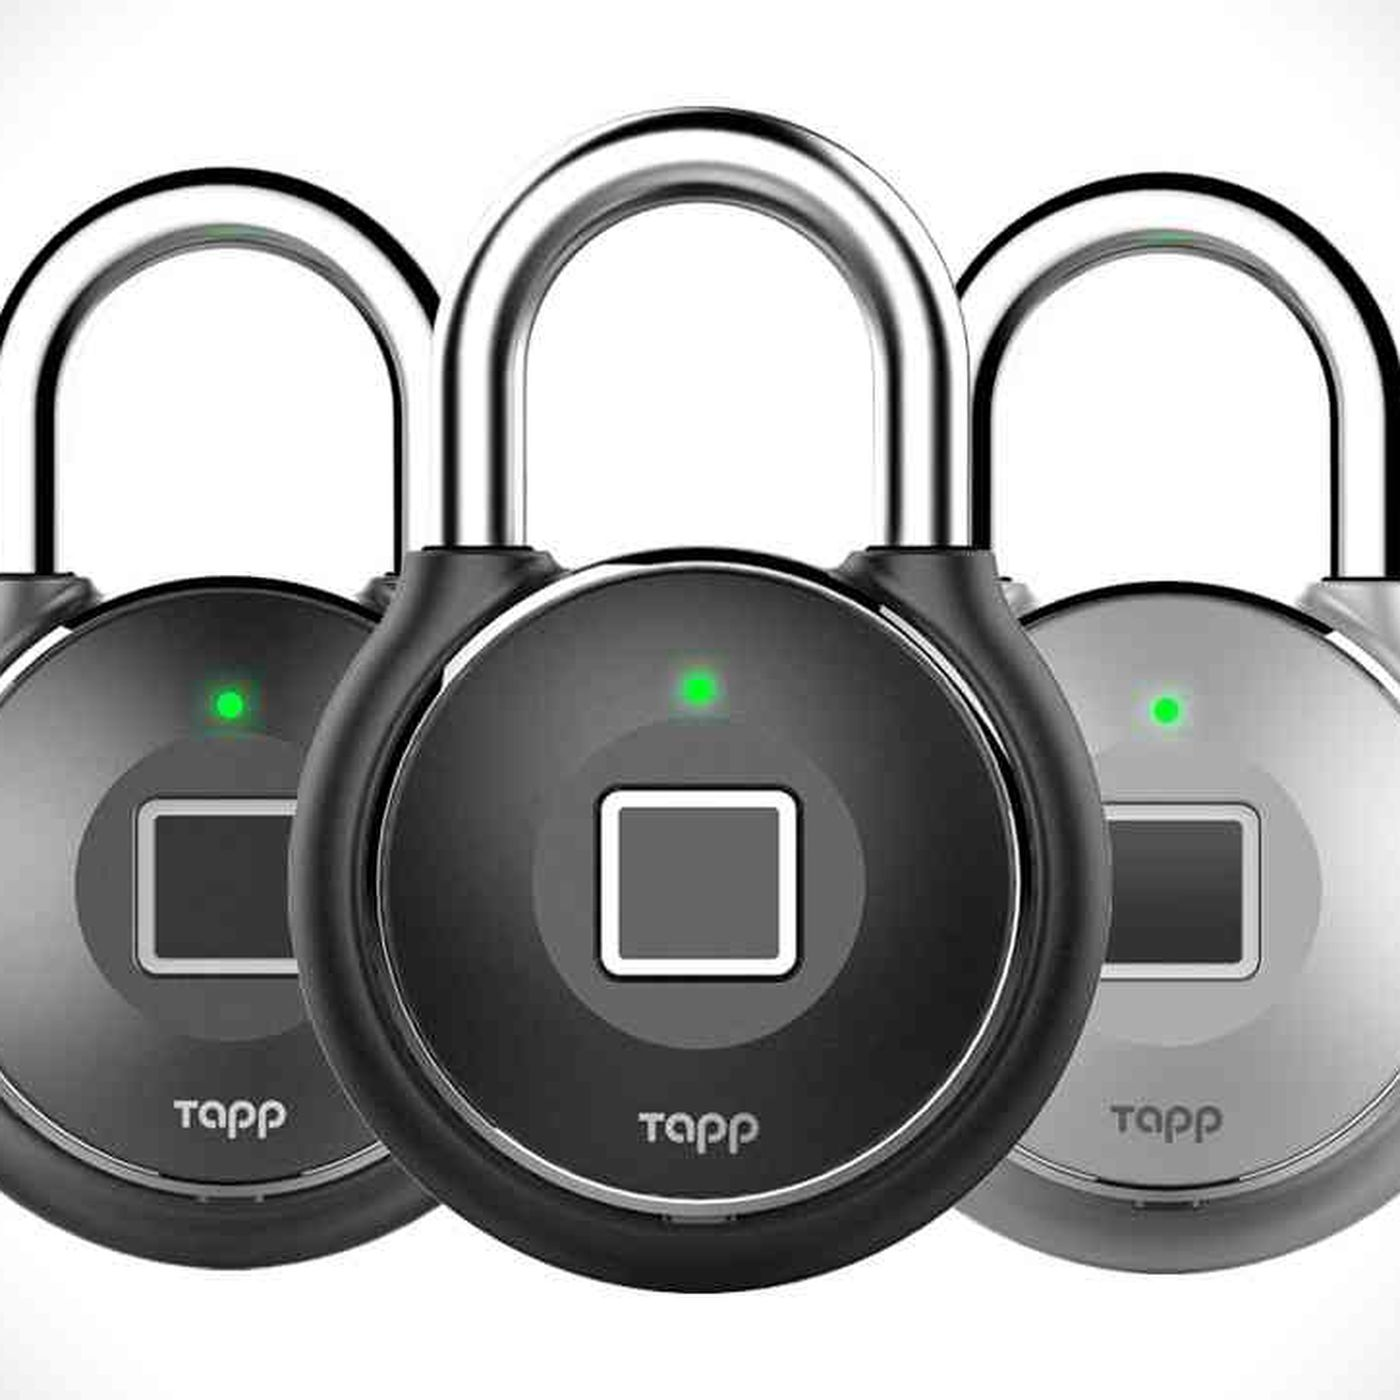 This fingerprint-verified padlock is extremely easy to hack